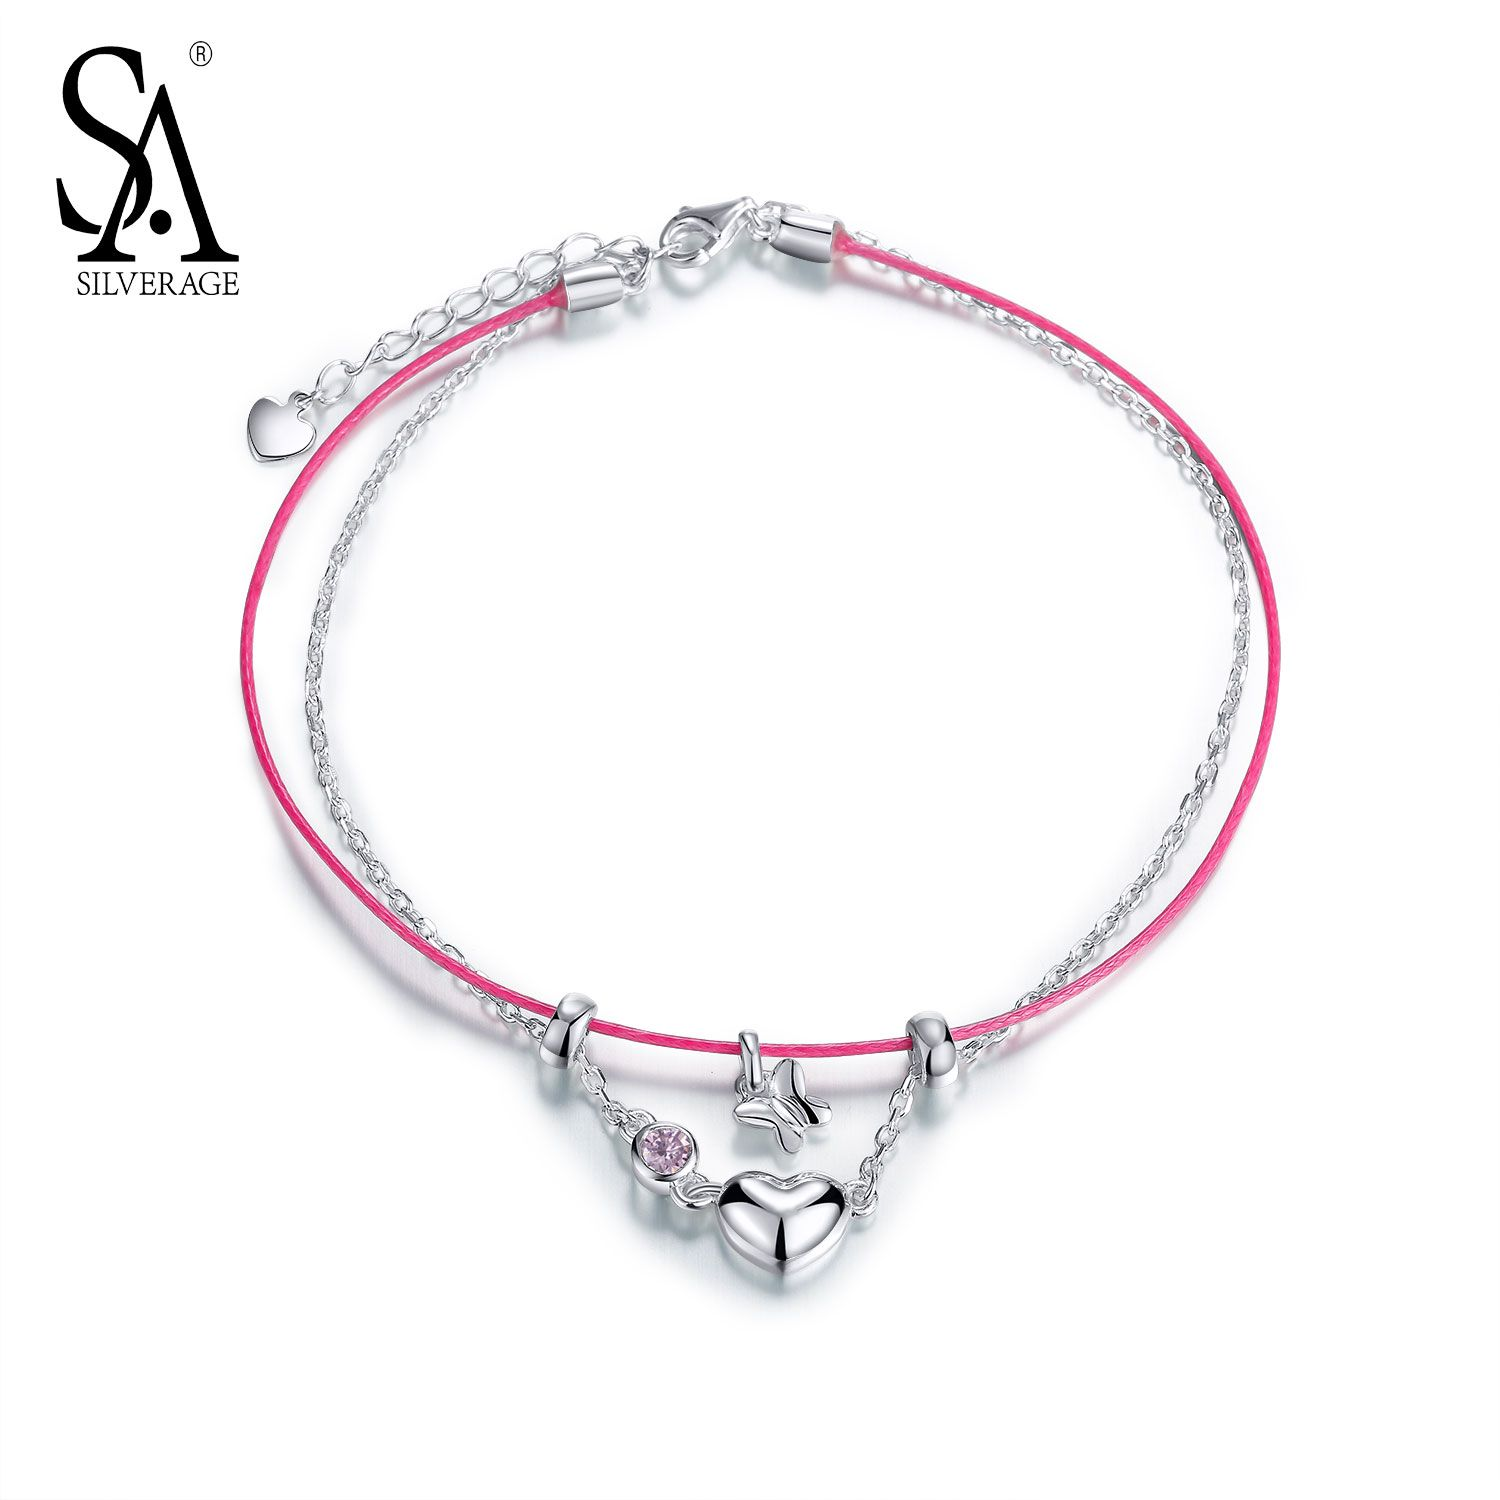 anklet fine com ankle italy jewelry bracelet chain bling dp singapore amazon silver sterling anklets